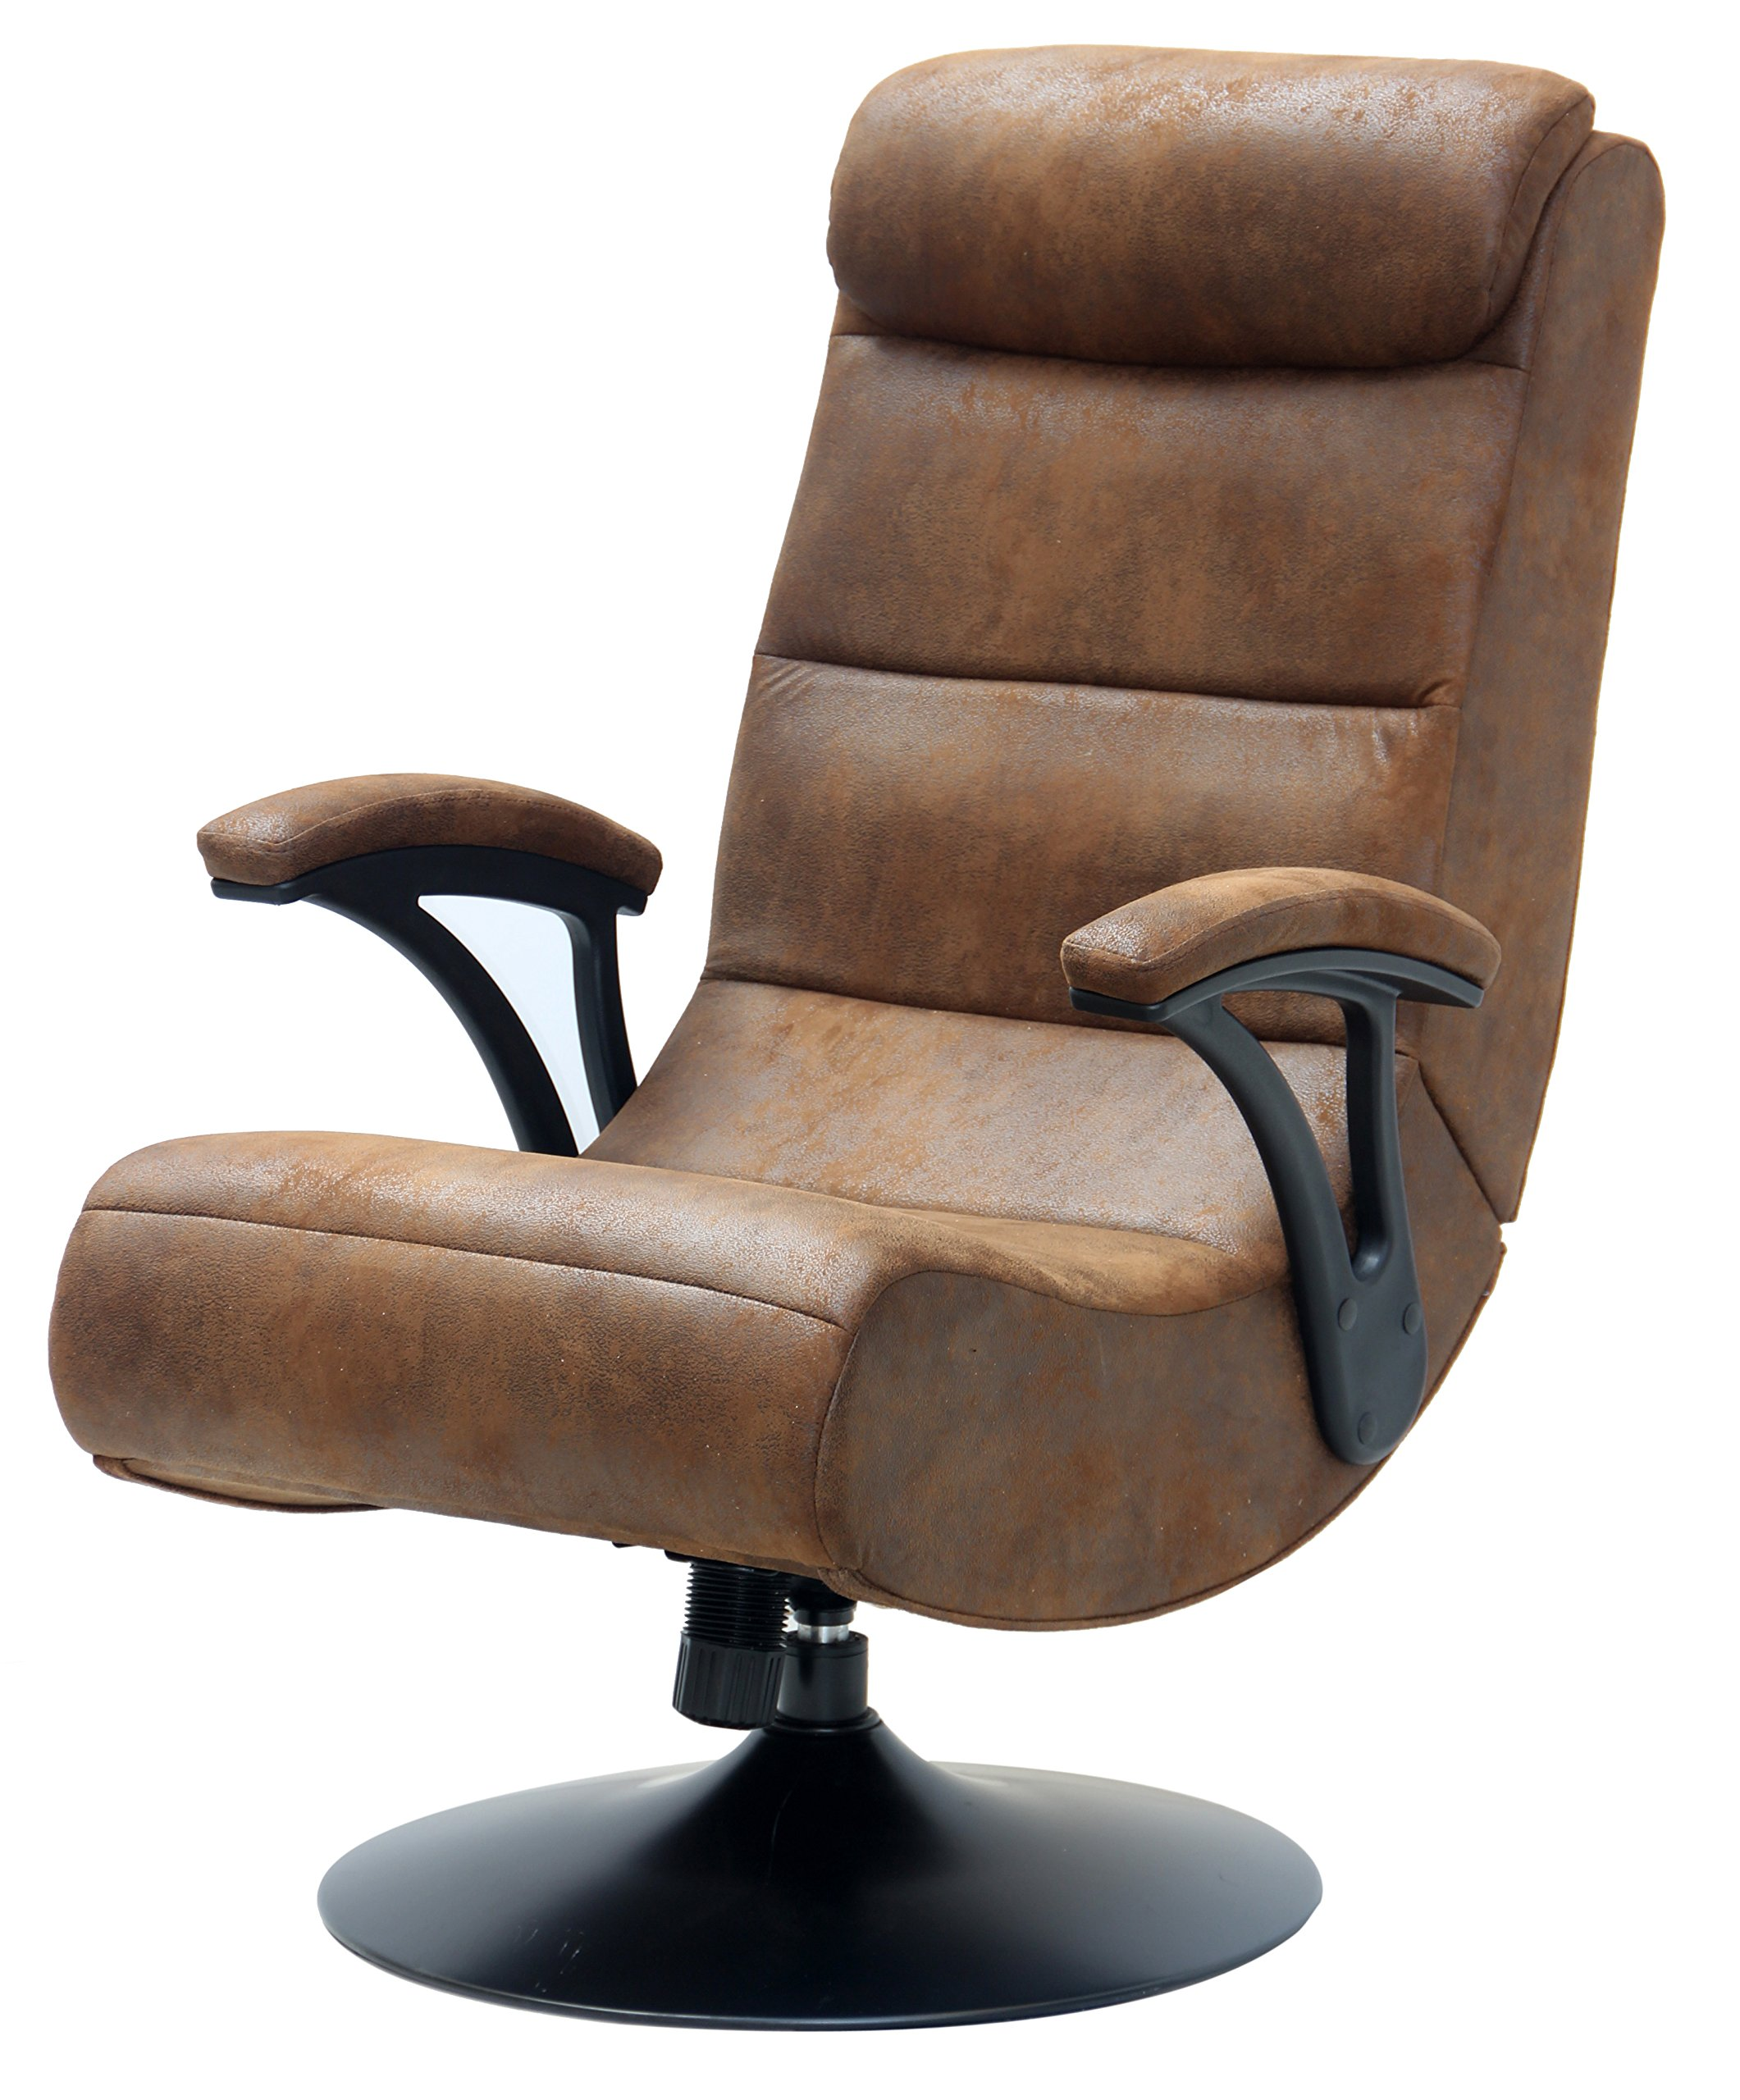 Extreme 2.1 Bluetooth X Rocker Foldable Pedestal Gaming Chair in Distressed Brown Suede